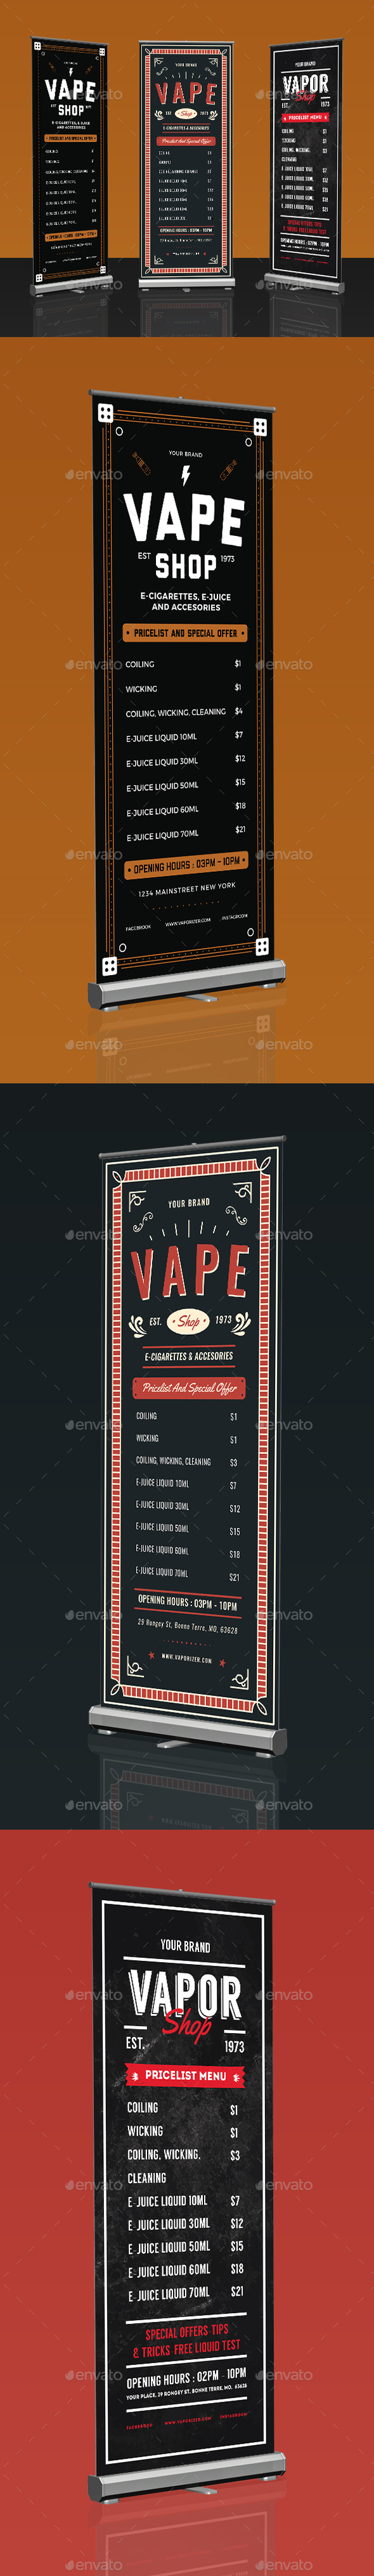 Vape Shop Roll Up Banner Bundle - Signage Print Templates